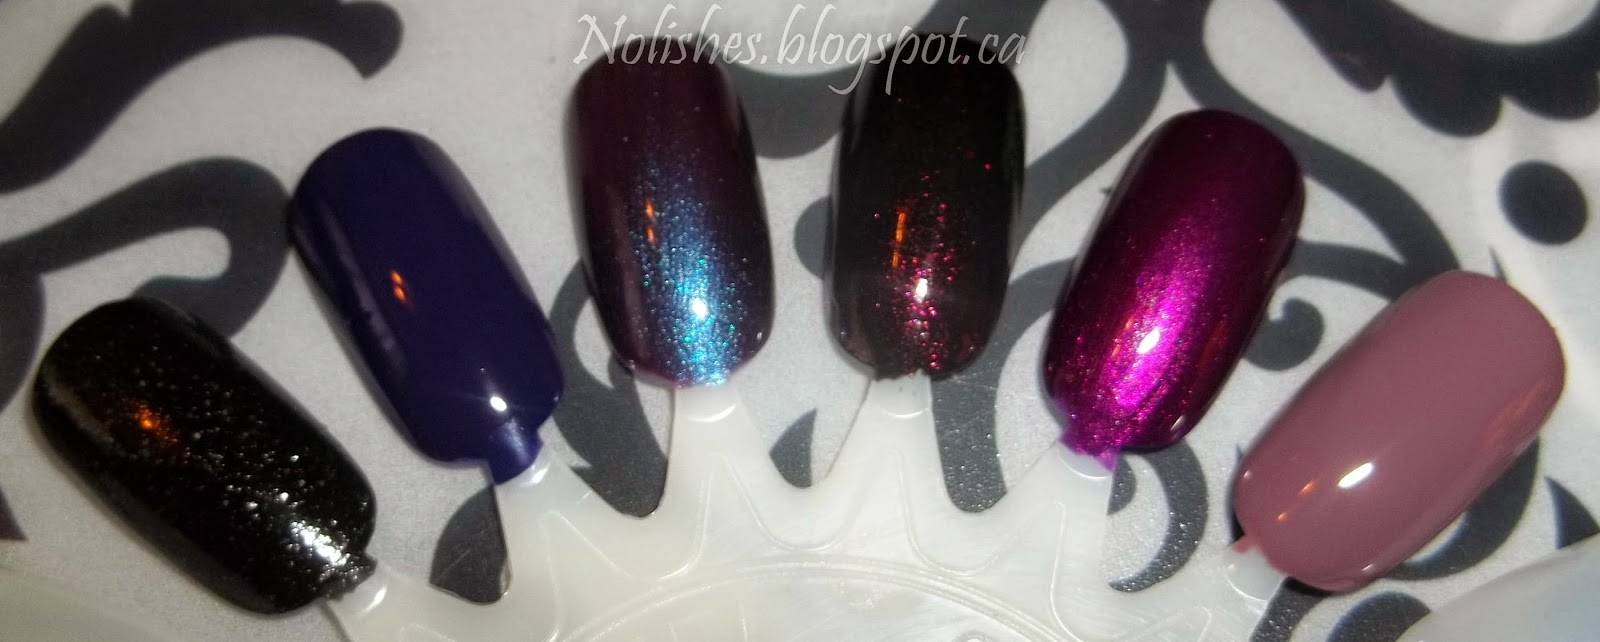 Goth is a black polish with small silver pieces of glitter, Wild Wisteria is a dark blurple, Royal Velvet is a medium purple/shimmery light blue duotone, Darkest Shadow is a black polish with a dark red fleck, Close Your Eyes is a shiny medium purple/plum, Blend is a greyish, purpley, brown mixed shade